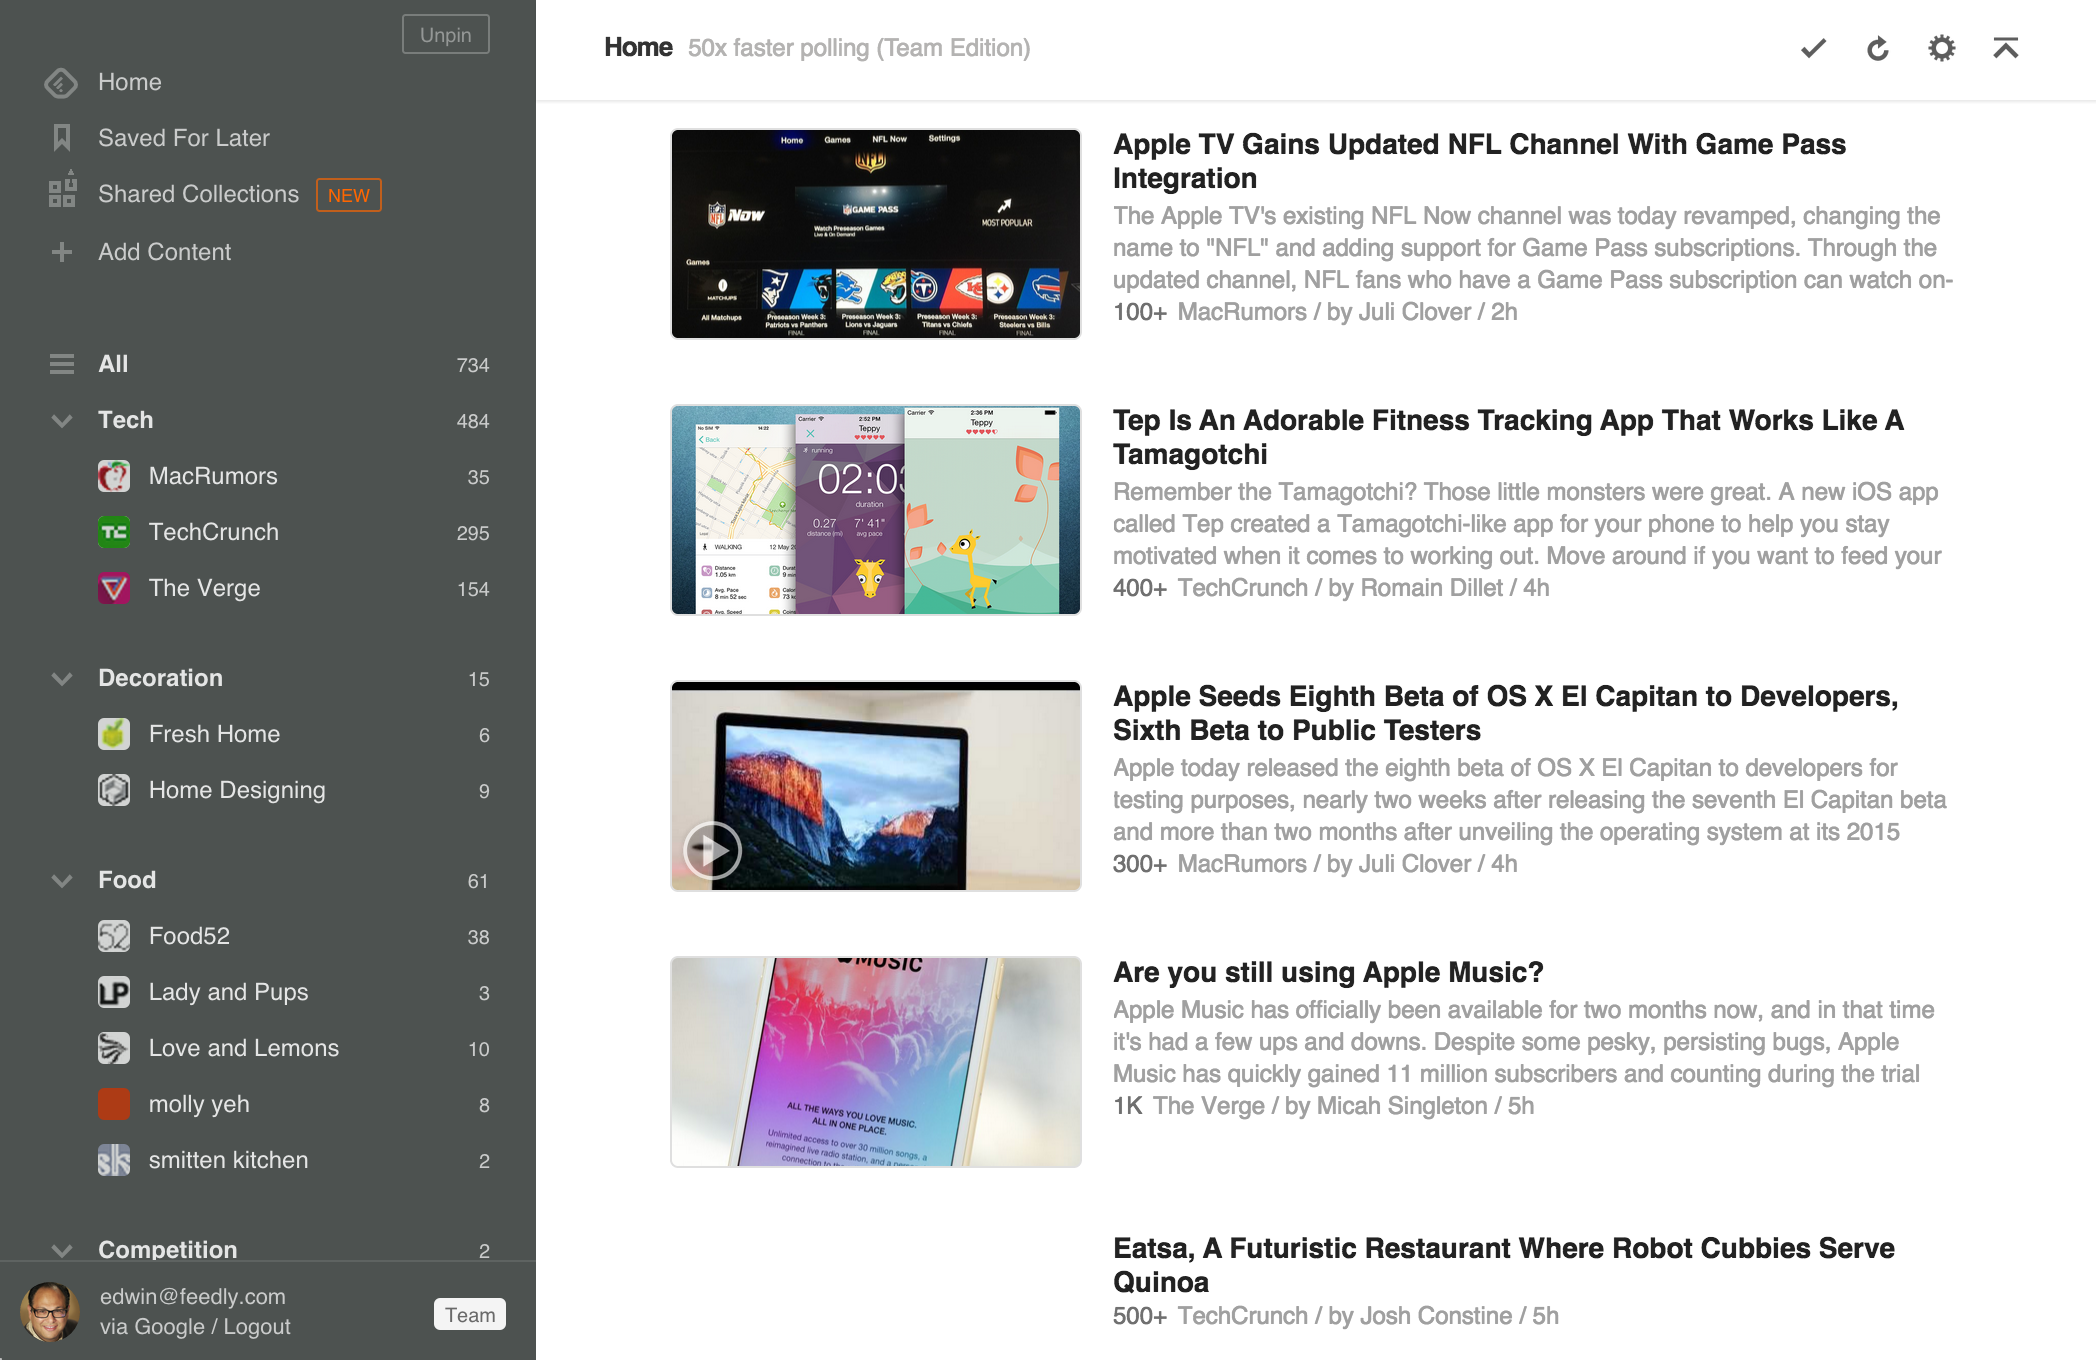 feedly-feature-img.png